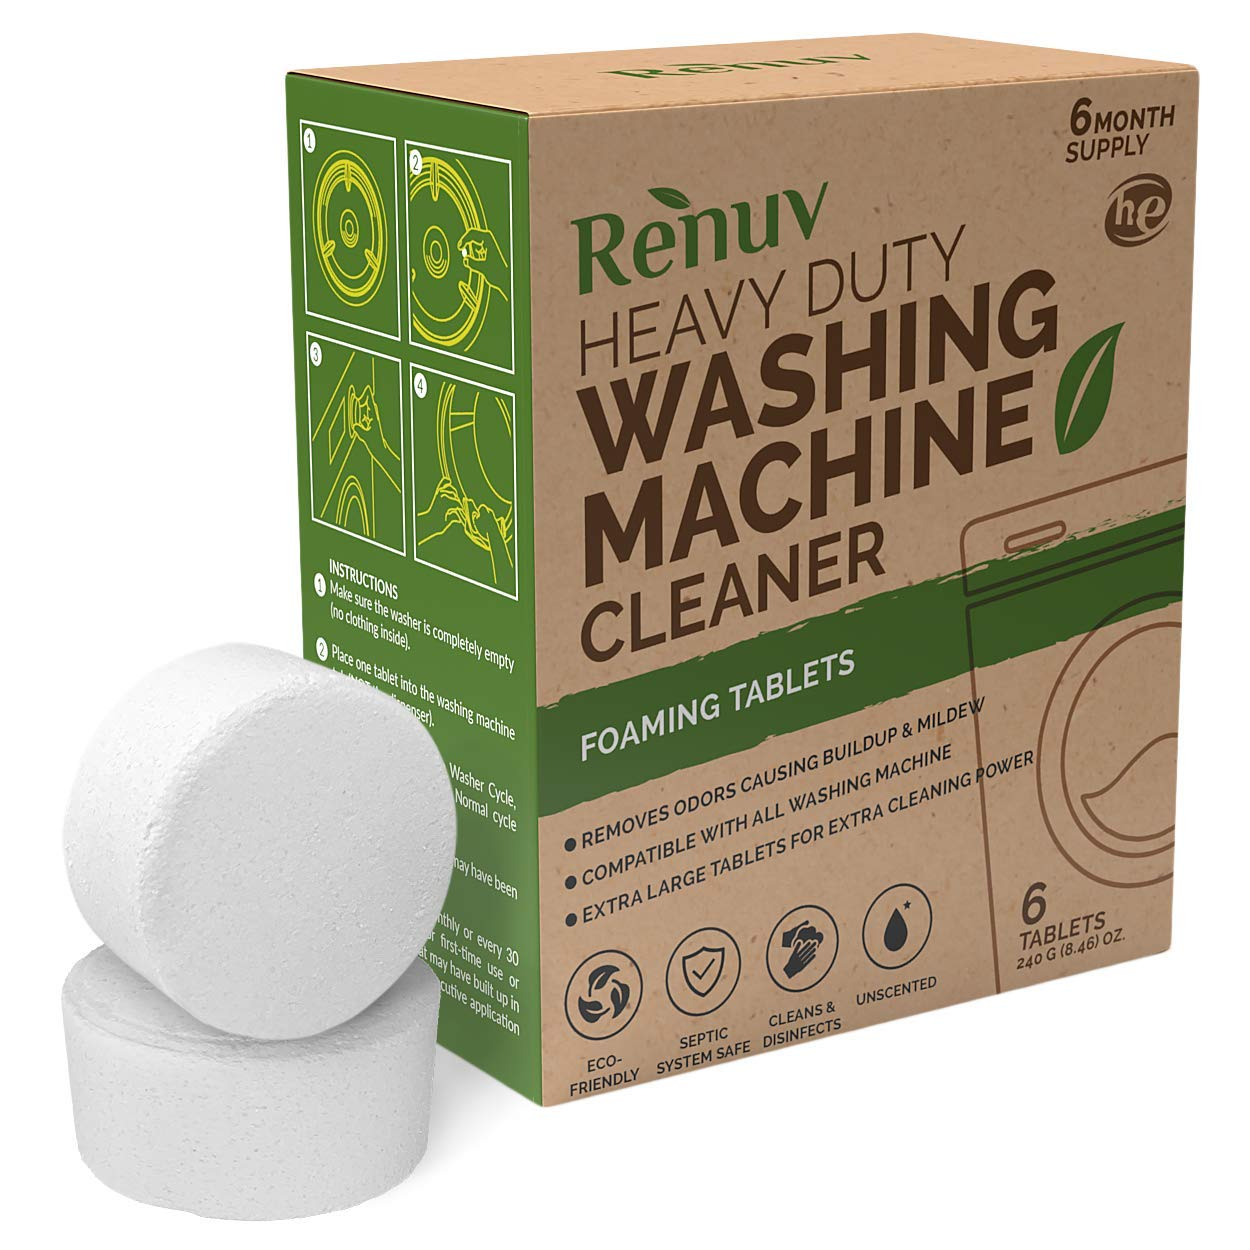 Renuv Washing Machine Cleaner For Front Load, Top Load or HE, Slow Dissolving Huge 40g Eco Friendly Tablets For Maximum Effect Deep Clean Your Washer Where Others Fail